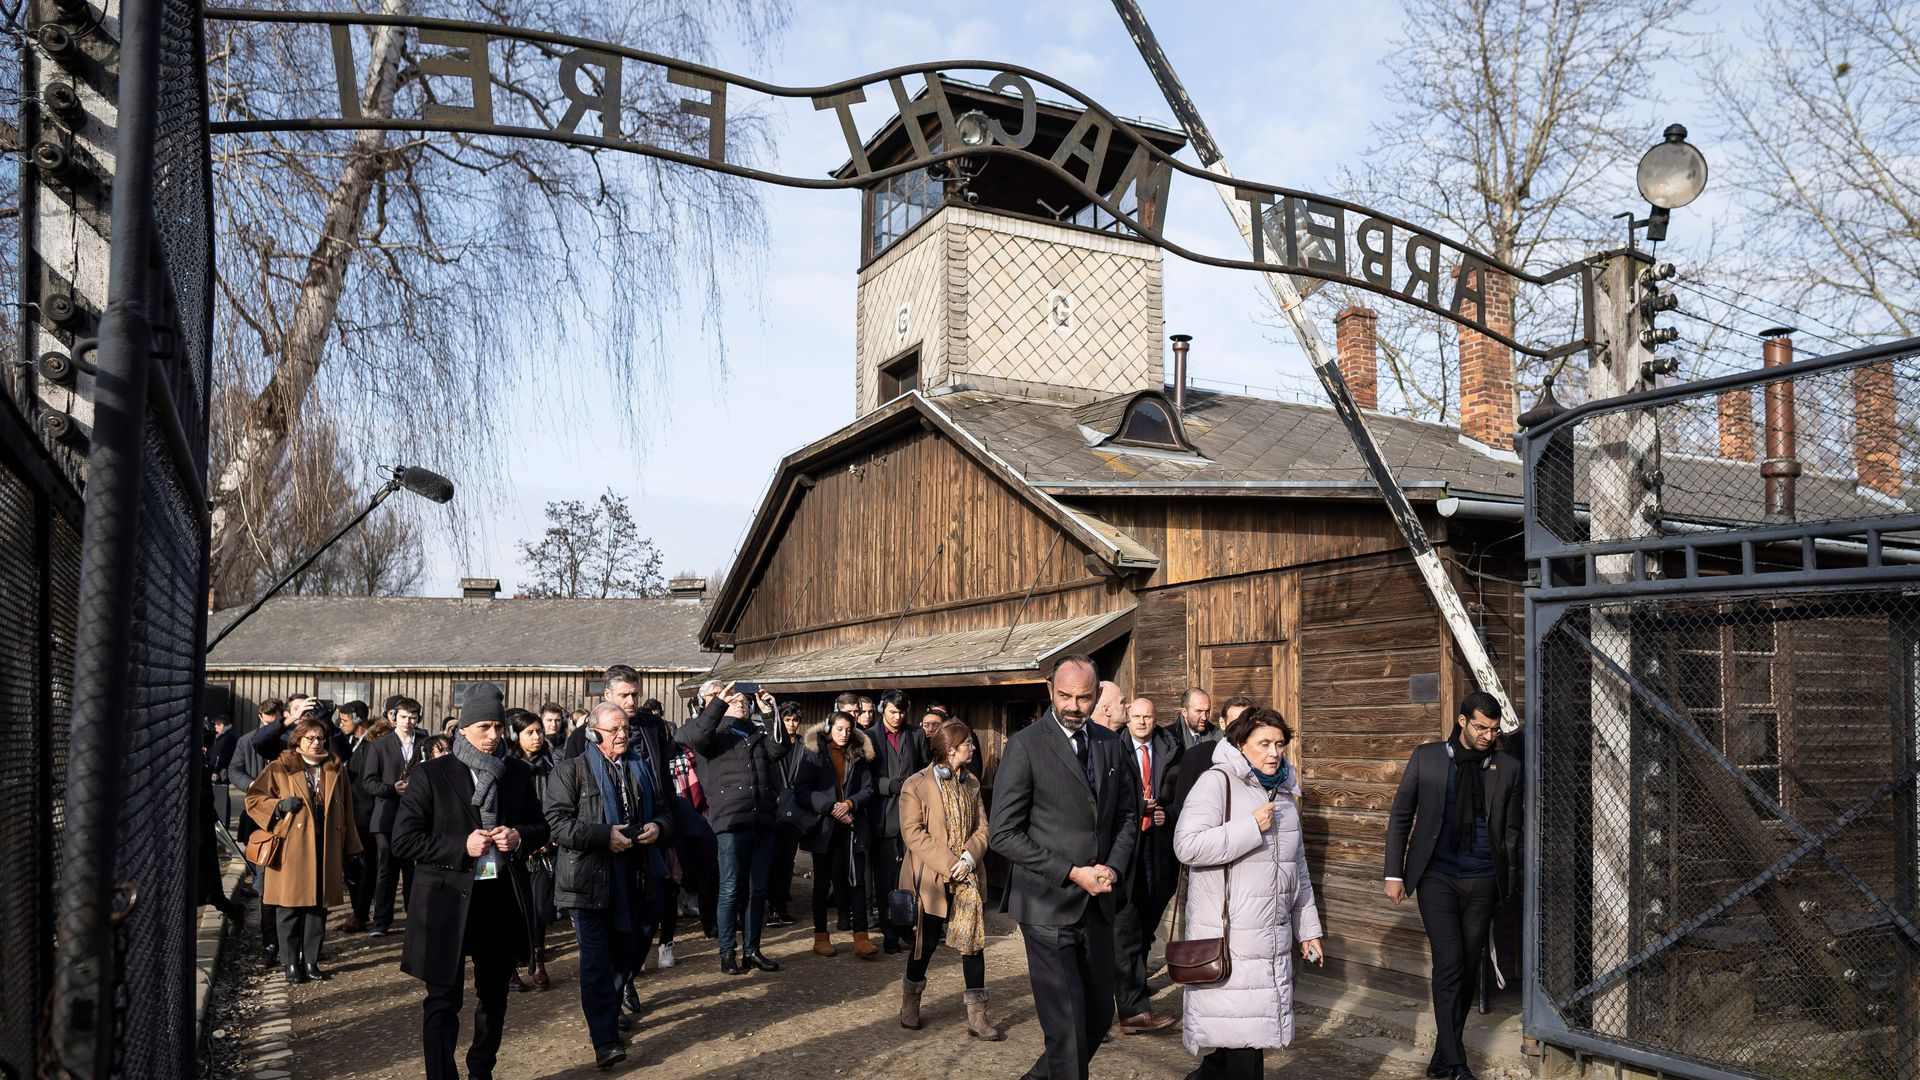 Photos: Holocaust survivors join at Auschwitz to commemorate 75th anniversary of liberation